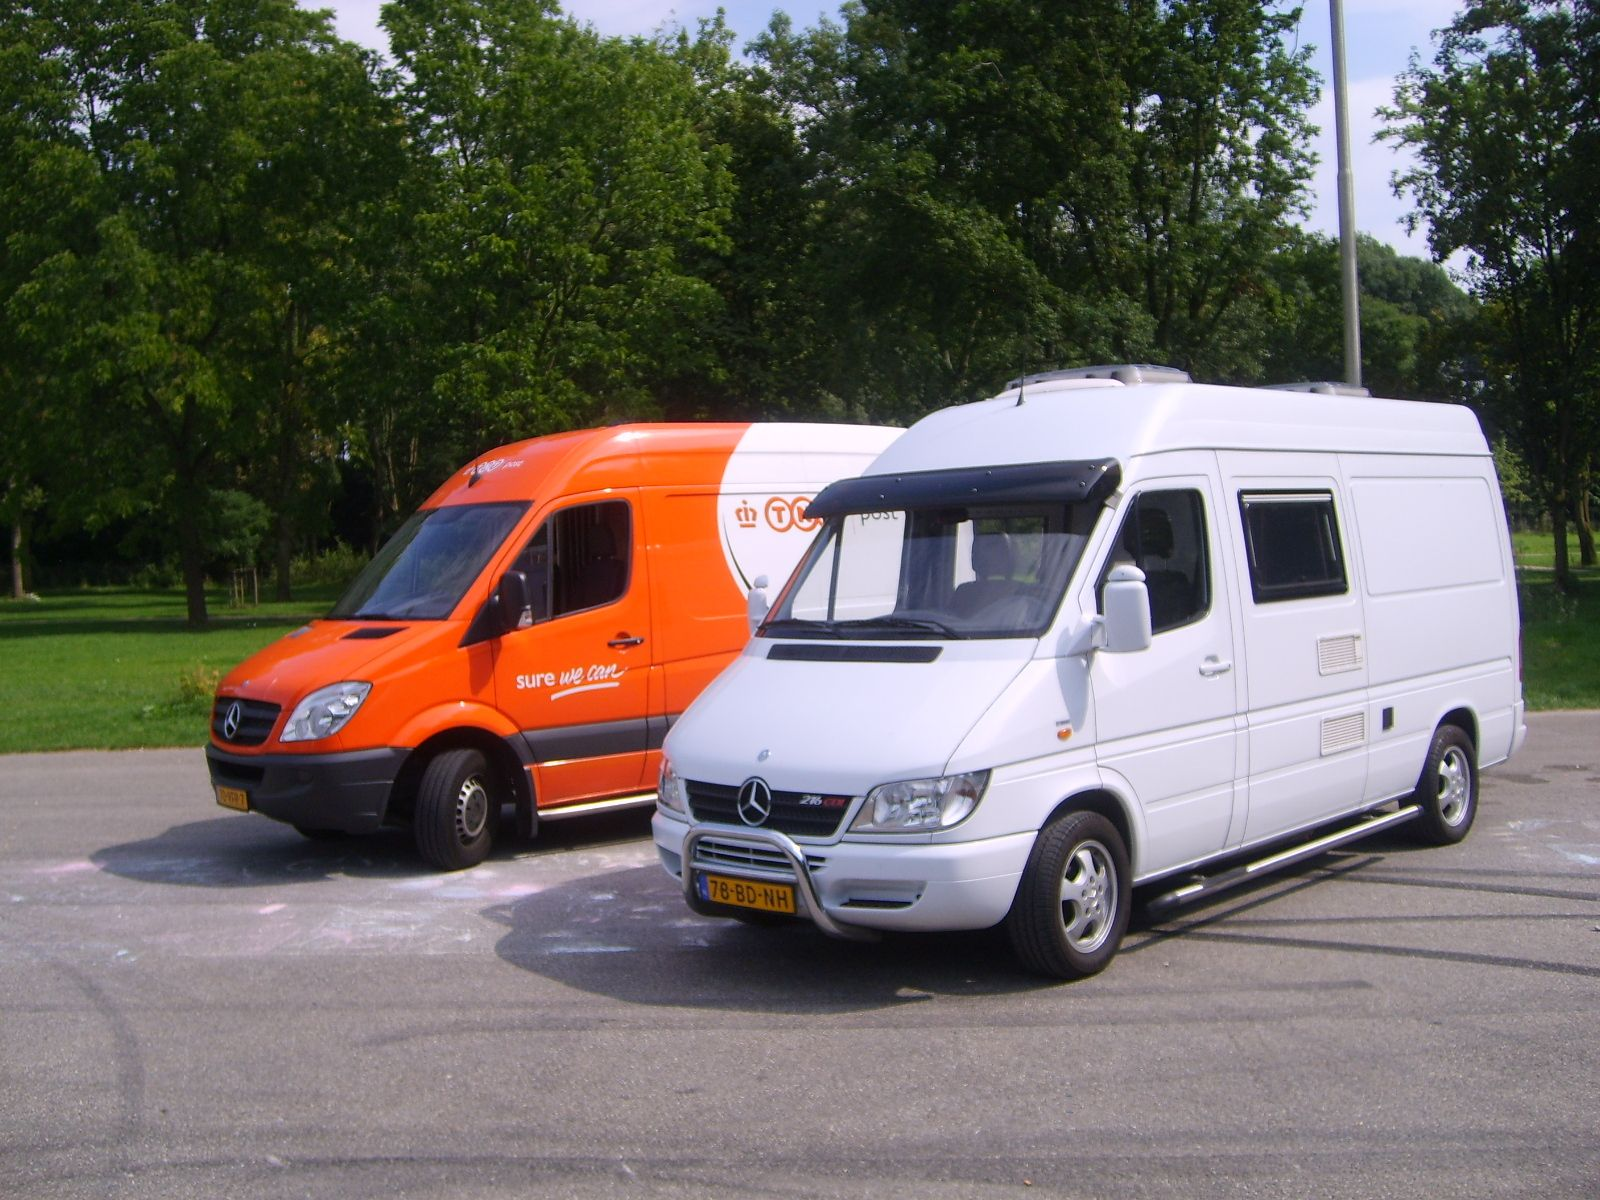 Two Dutch Sprinters, one a commercial van and the other a T1N